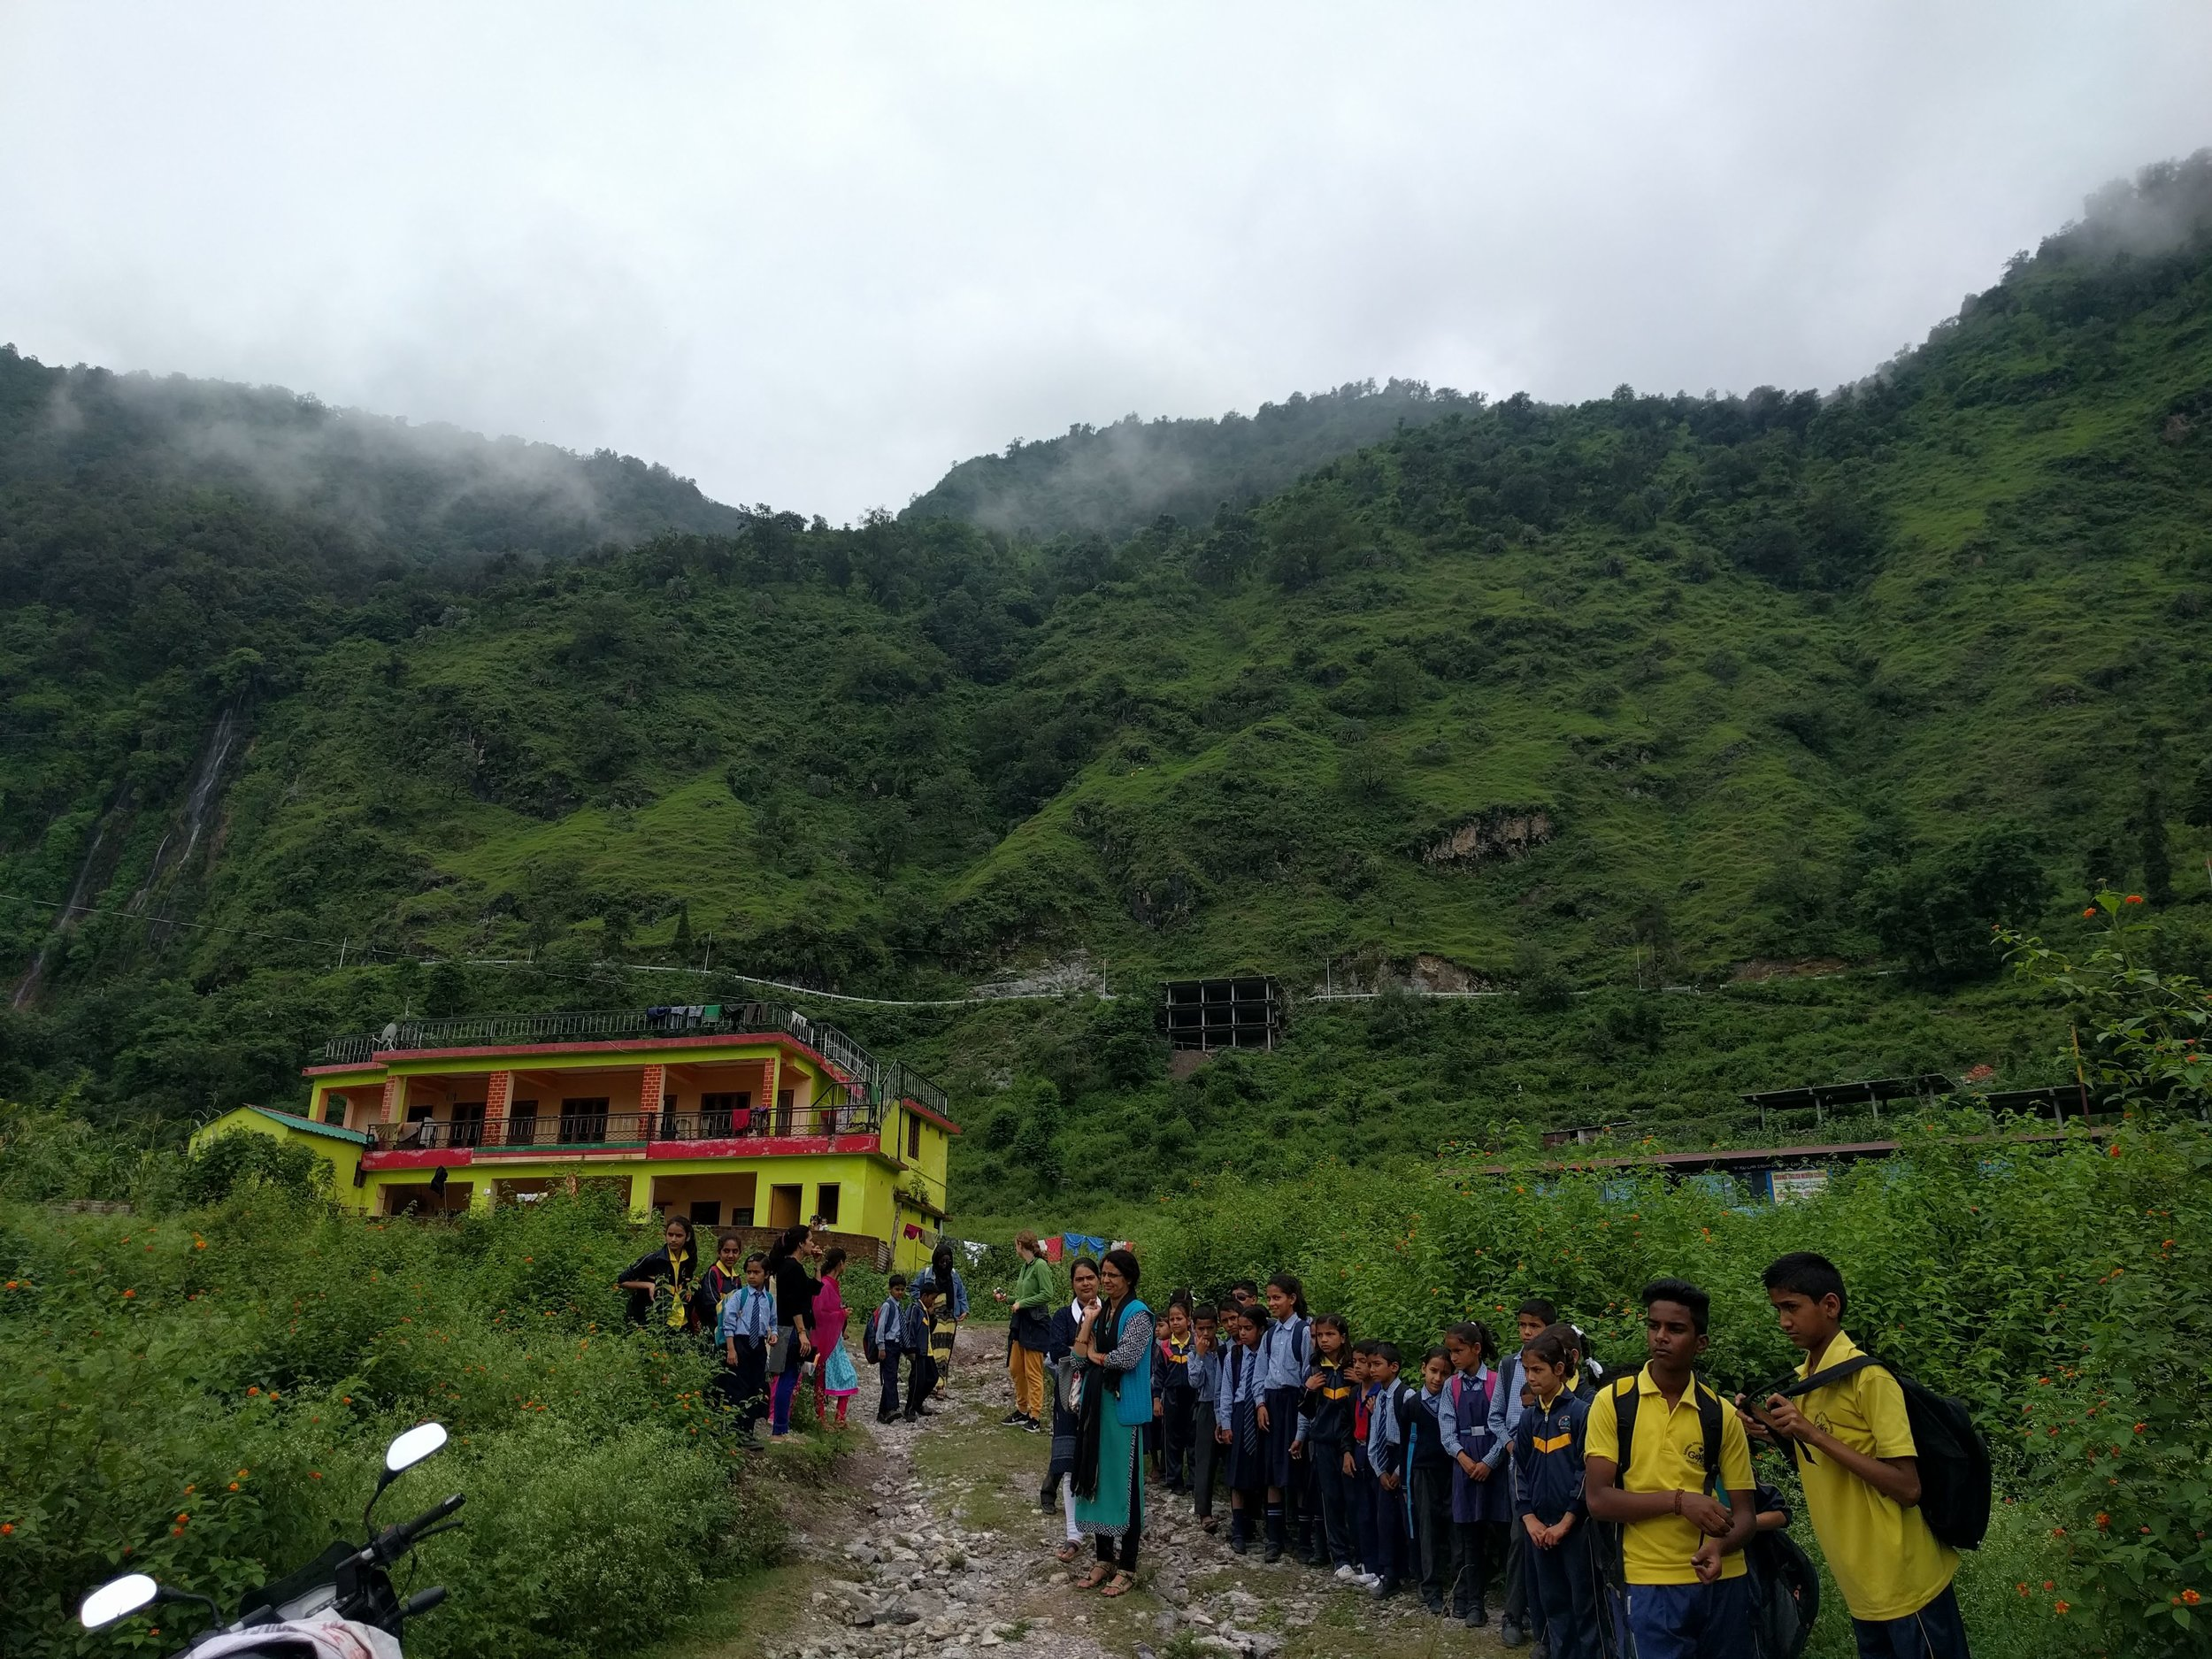 Students waiting for their buses home at the Garwhal English Medium School (GEMS). The small school building is barely visible above the plants on the right.